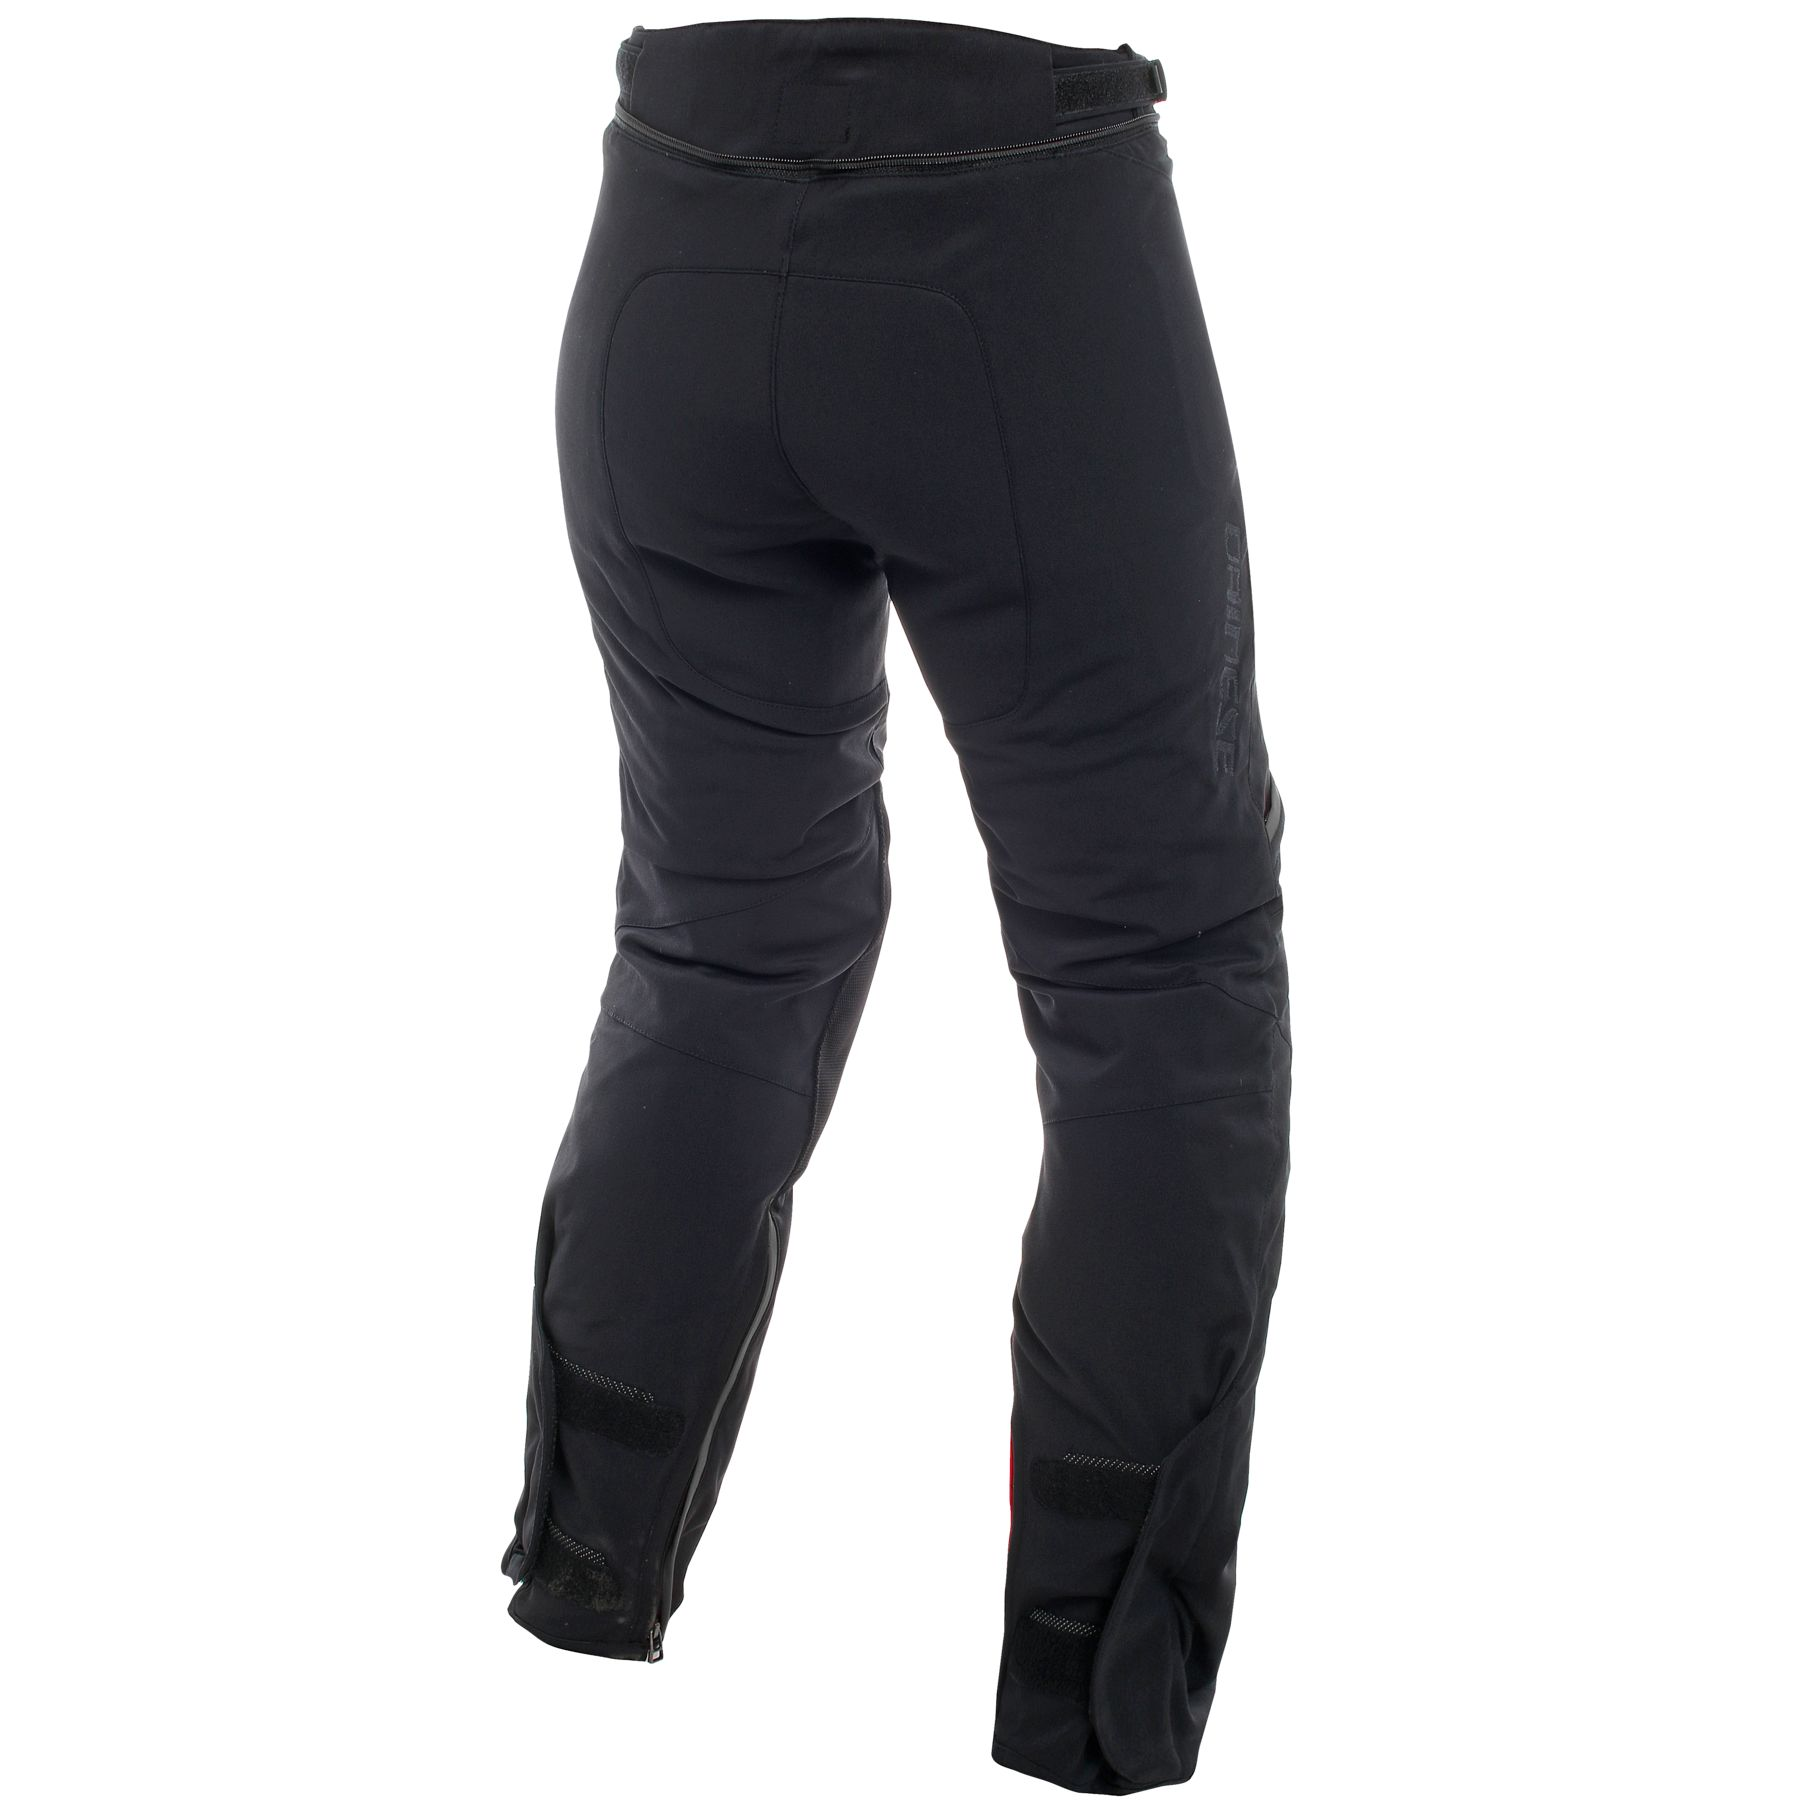 Pantalon Dainese CARVE MASTER 2 LADY - GORE-TEX